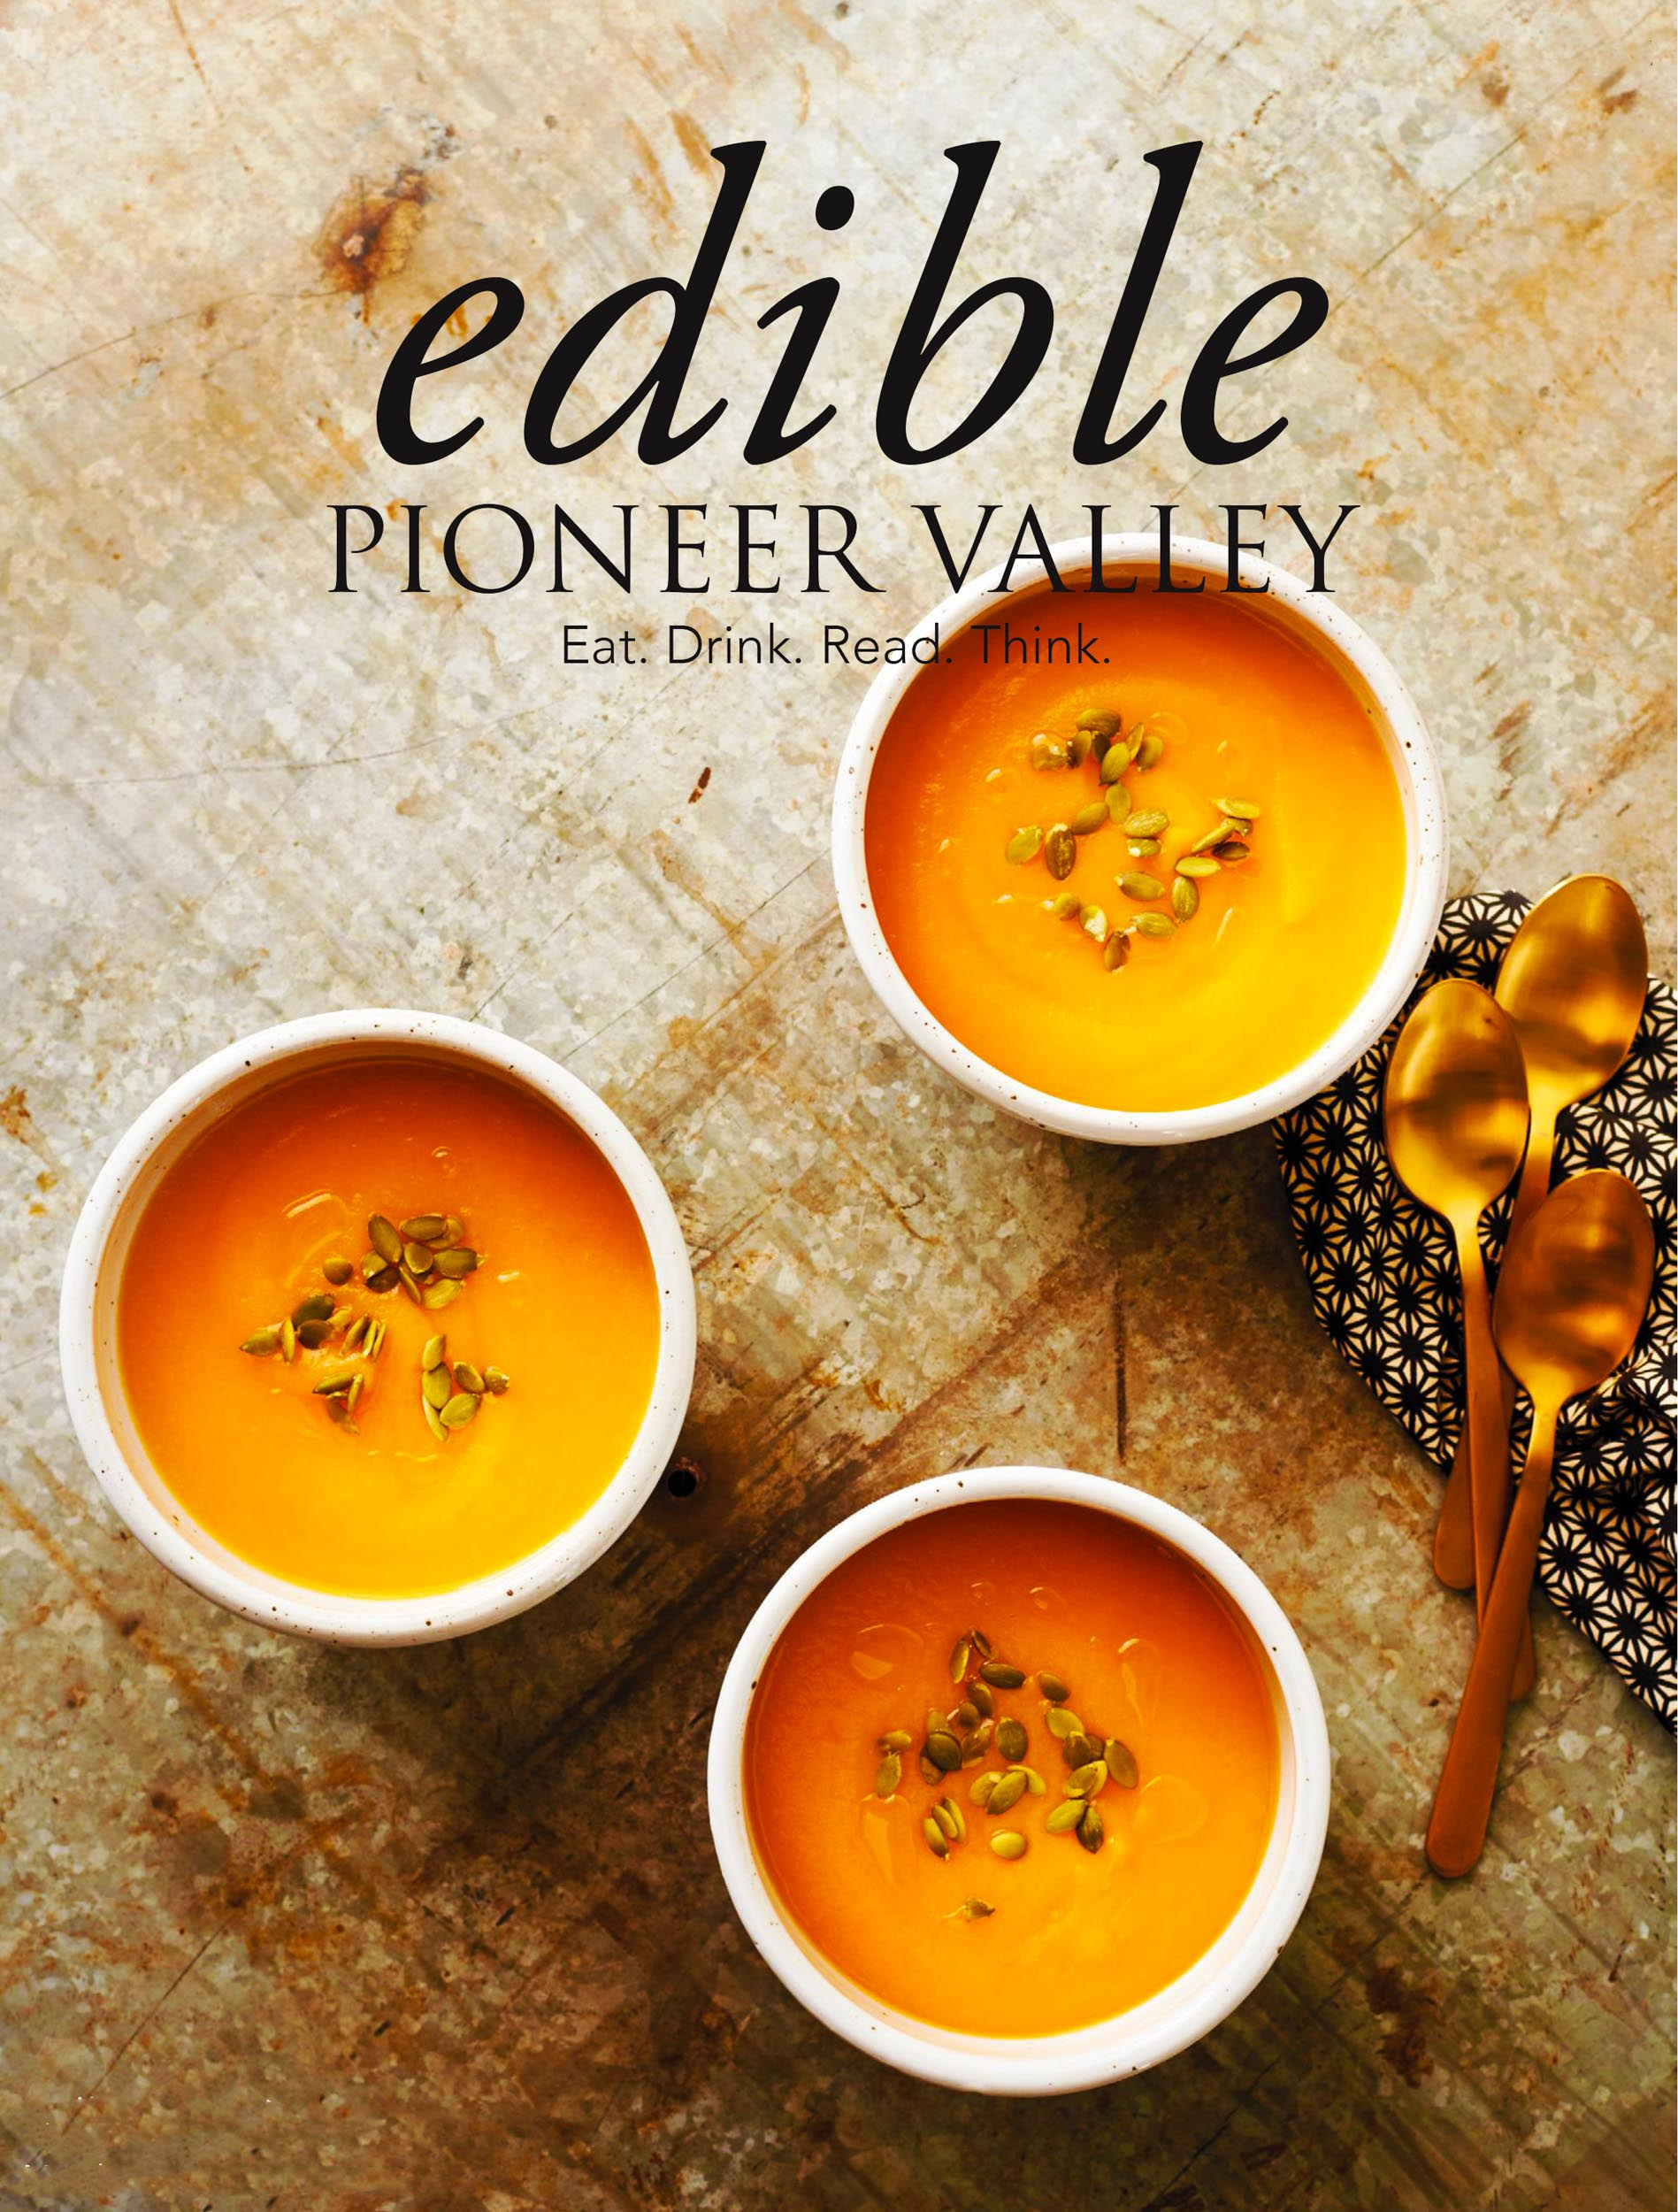 Dominic-Perri-Commissioned-Edible-Pioneer-Valley-Cover-Butternut-Squash